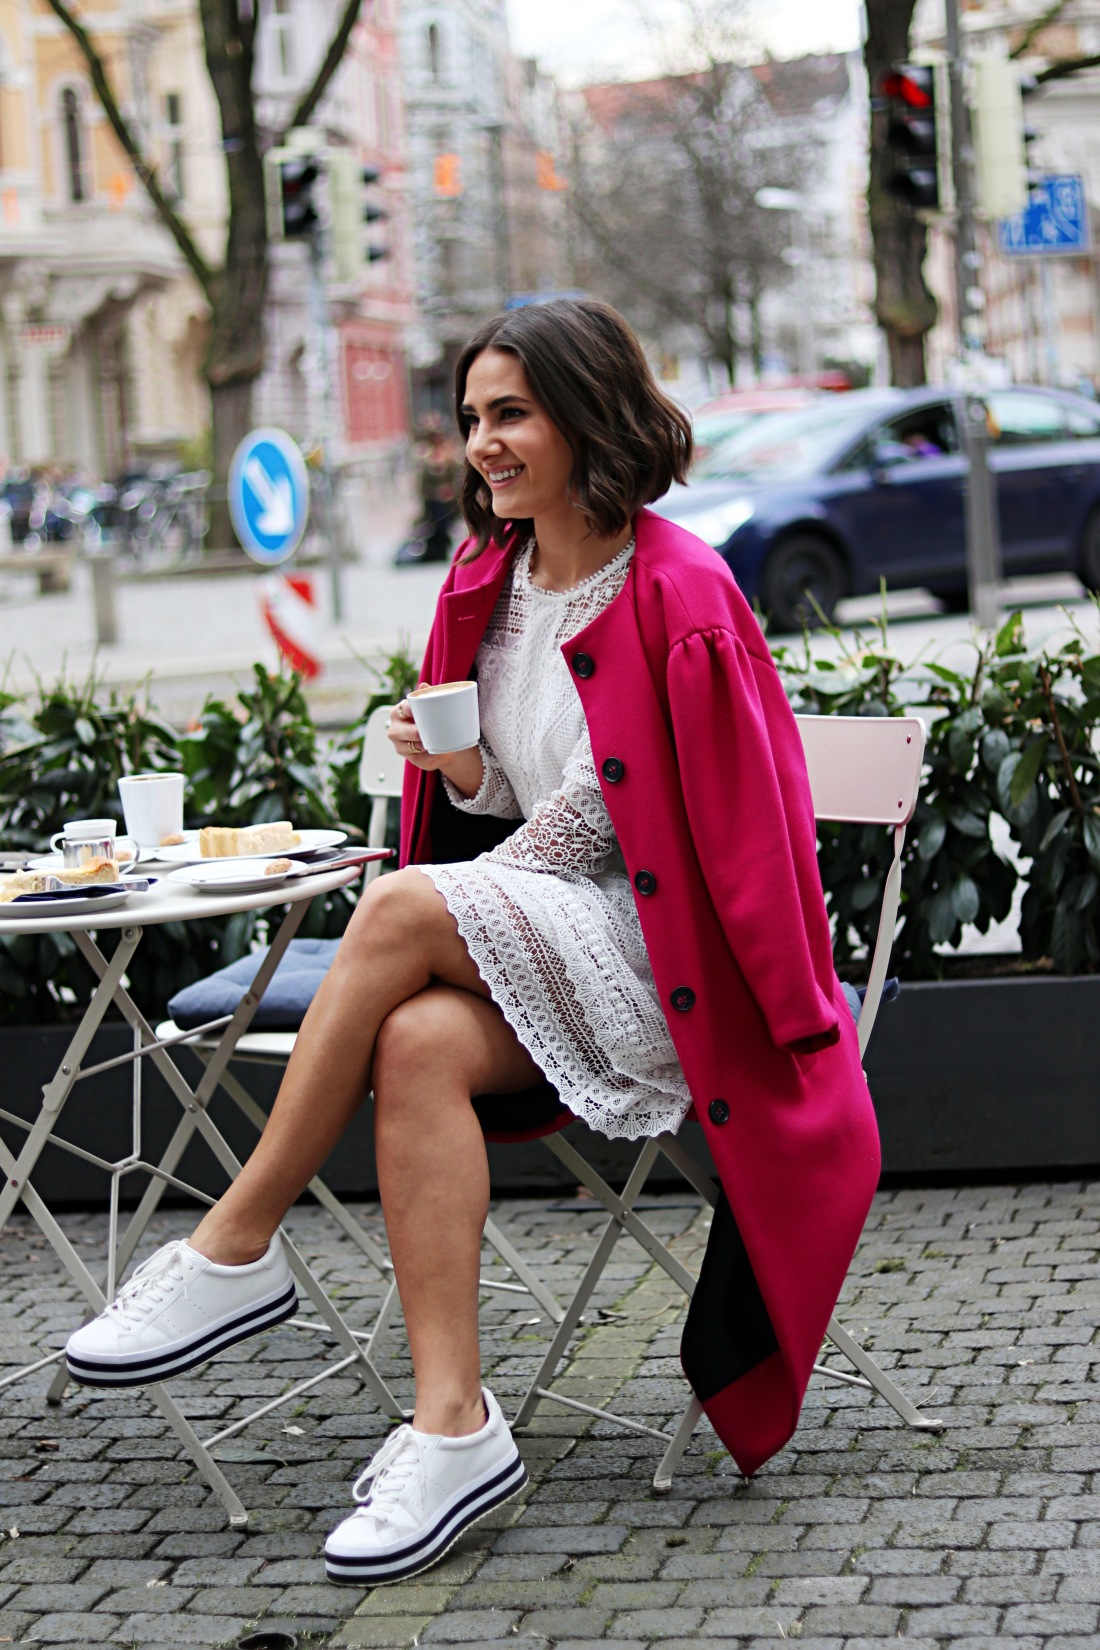 fashionblogger_kateschmidt_ootd_lace_dress_pink_coat